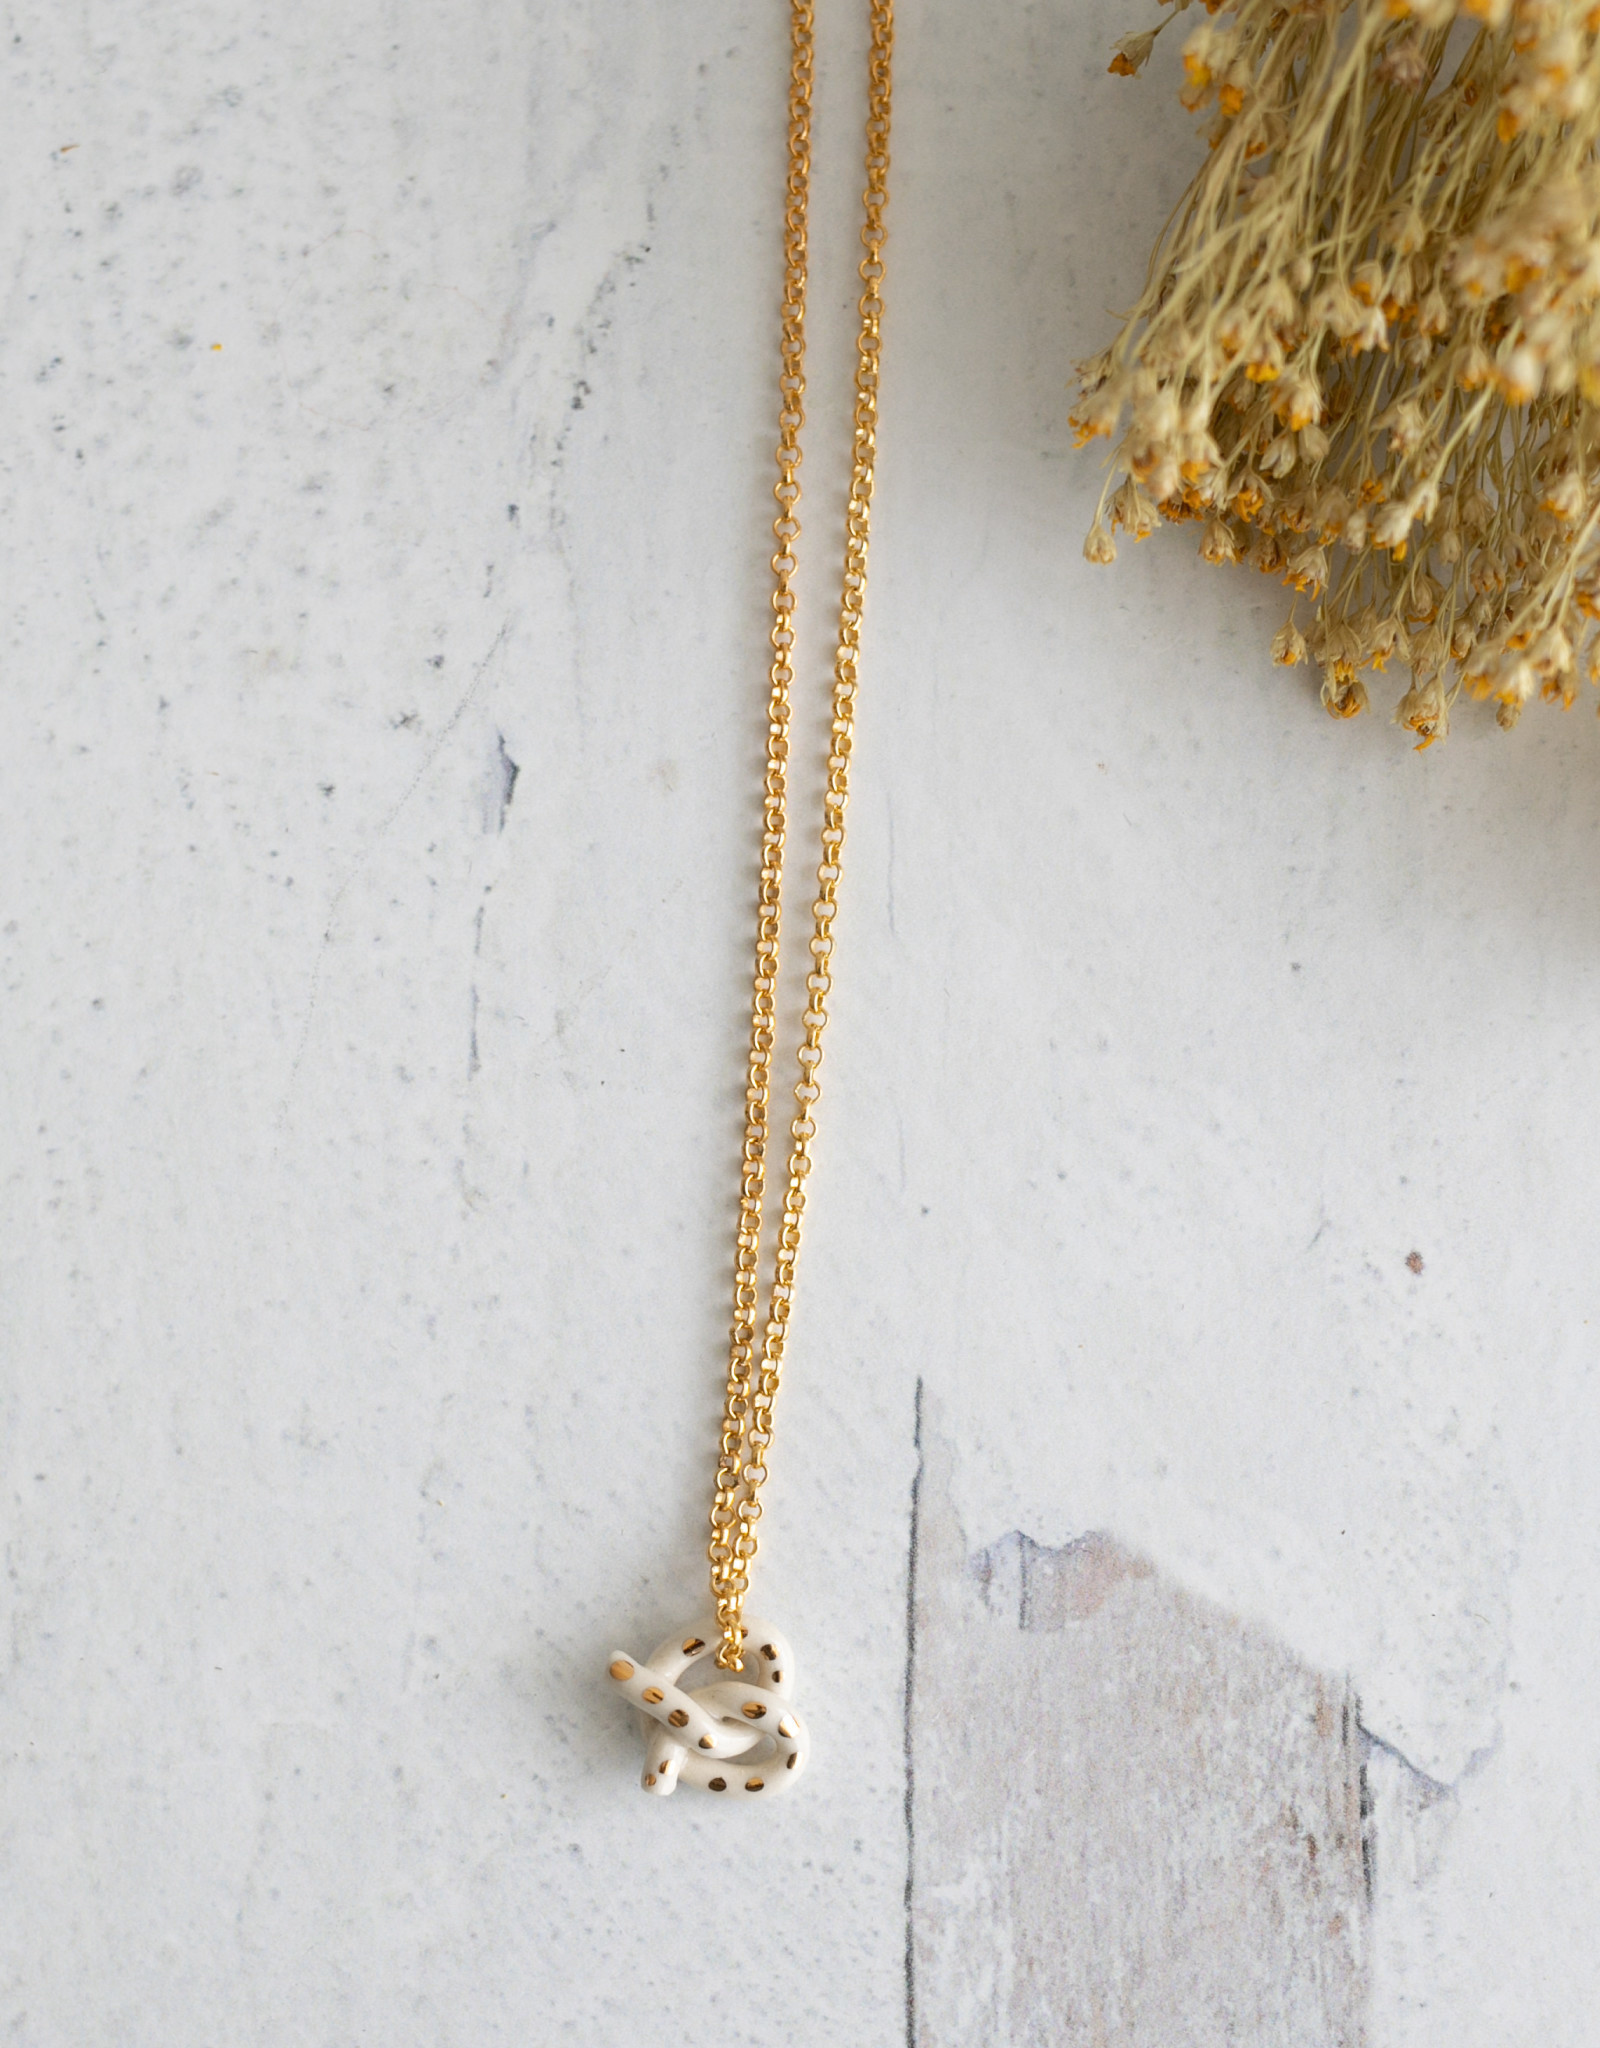 Fox and Beagle Pretzle Necklace - Golden Salted